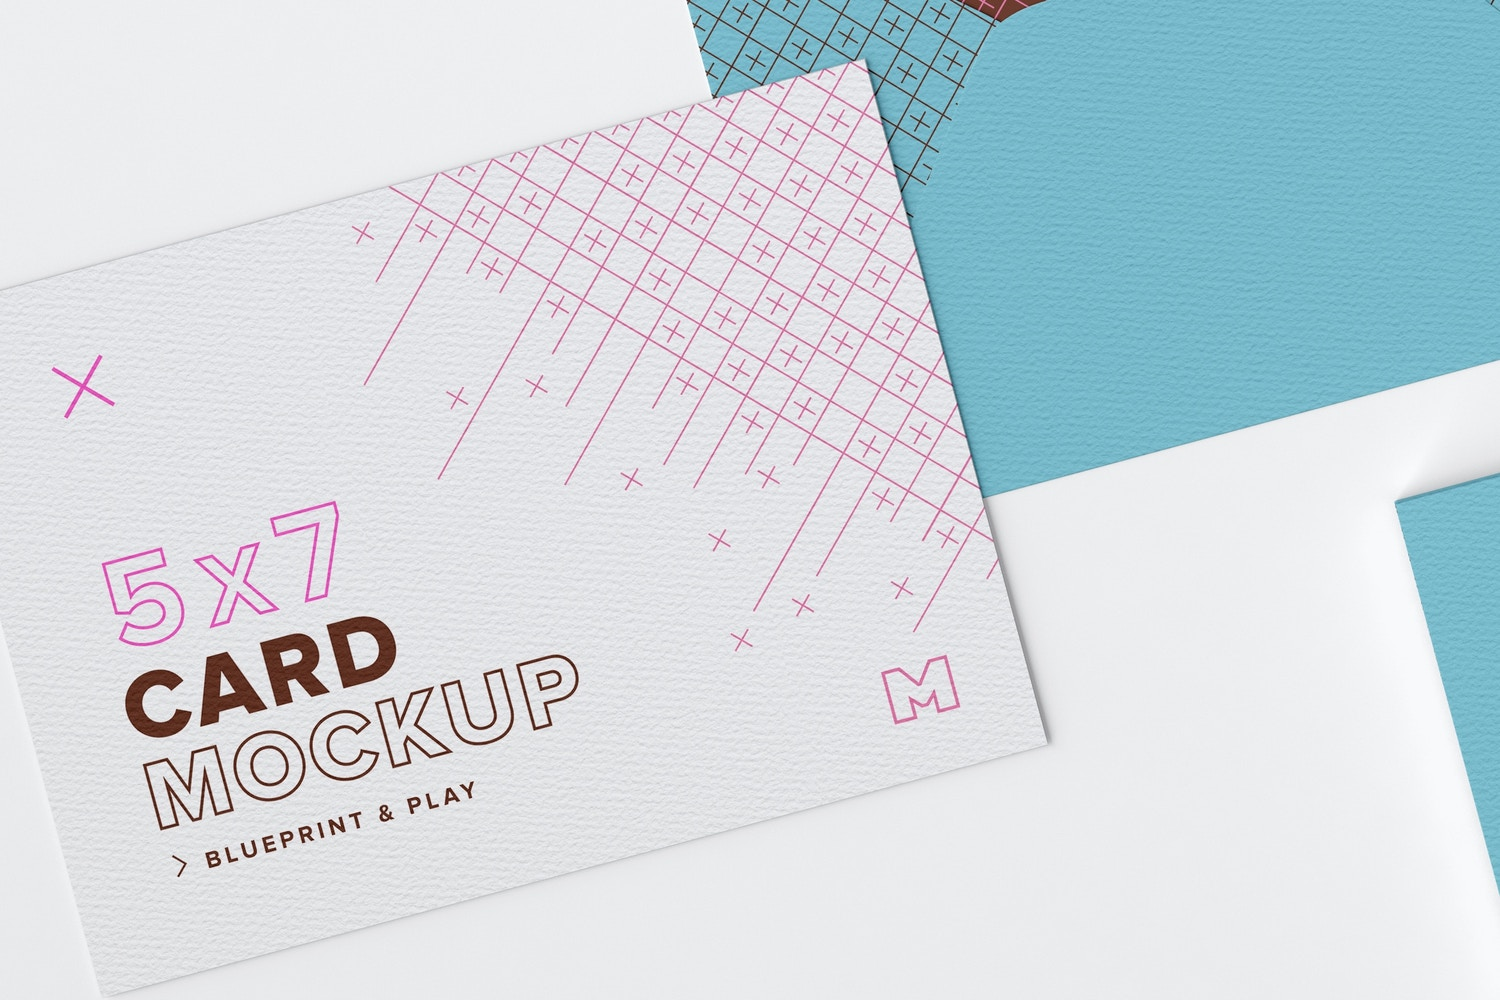 This mockup have as optional a texture effect to make it more real.